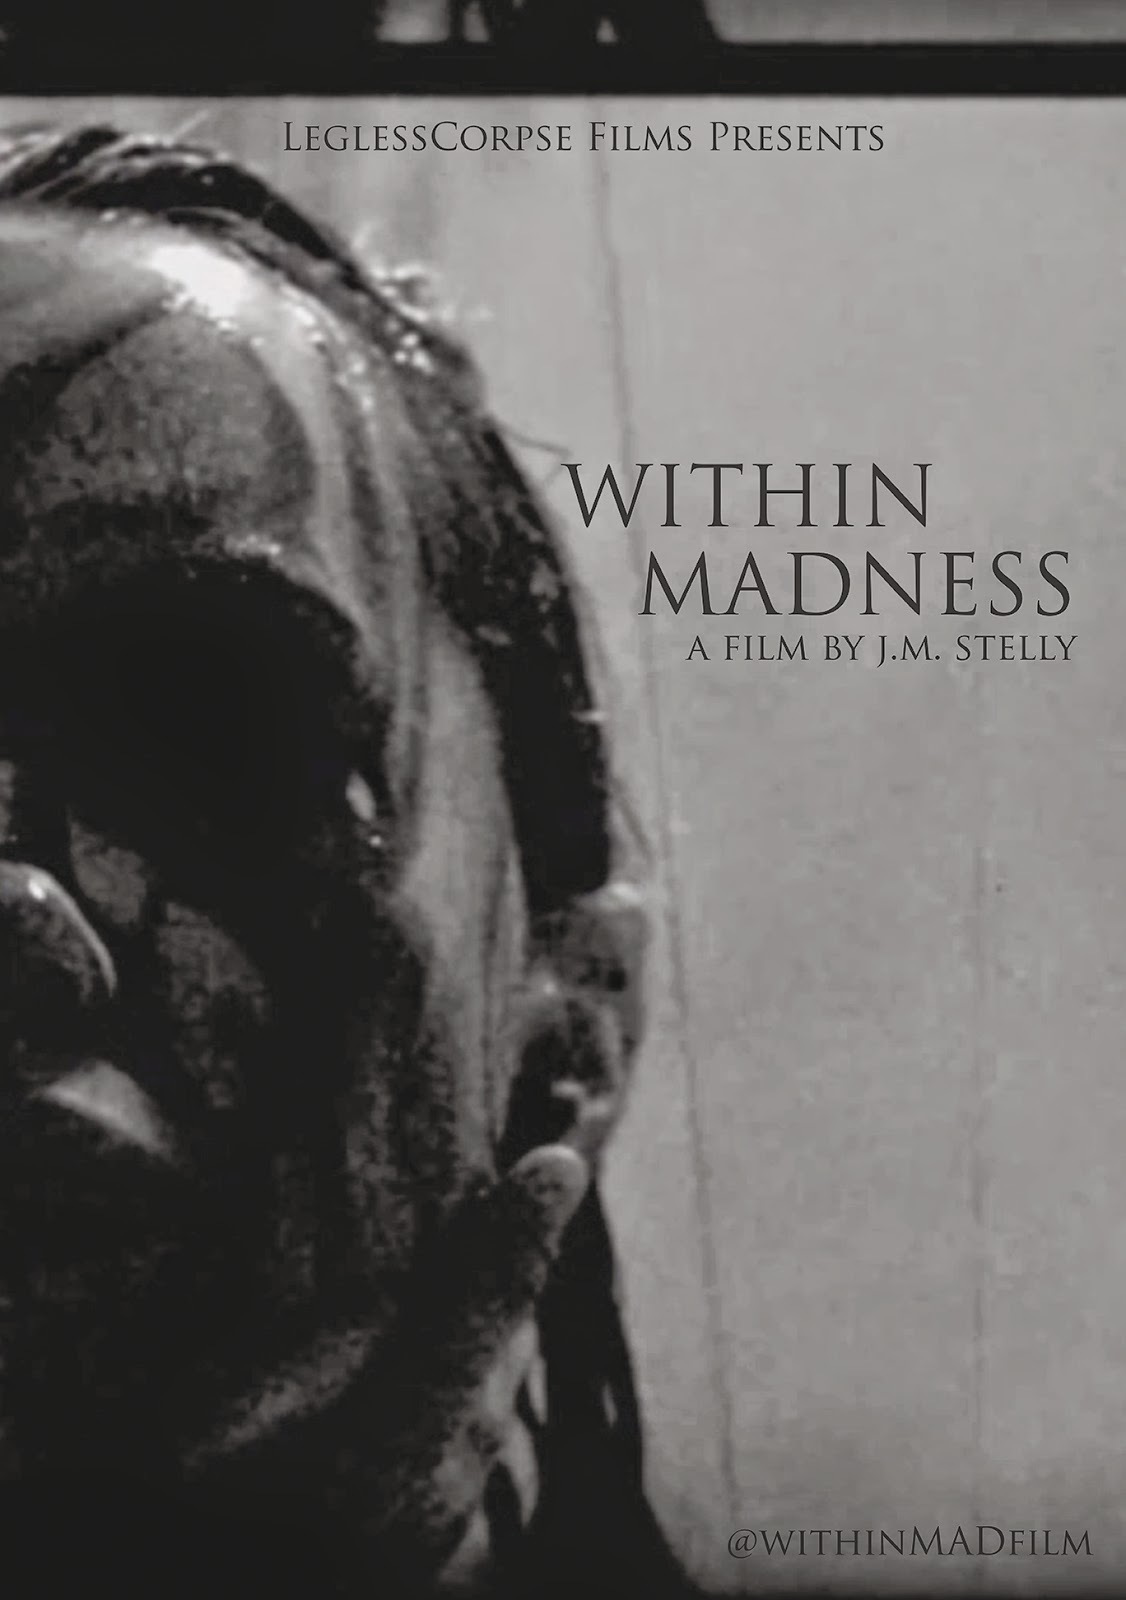 http://horrorsci-fiandmore.blogspot.com/p/within-madness-takes-us-on-journey-into.html